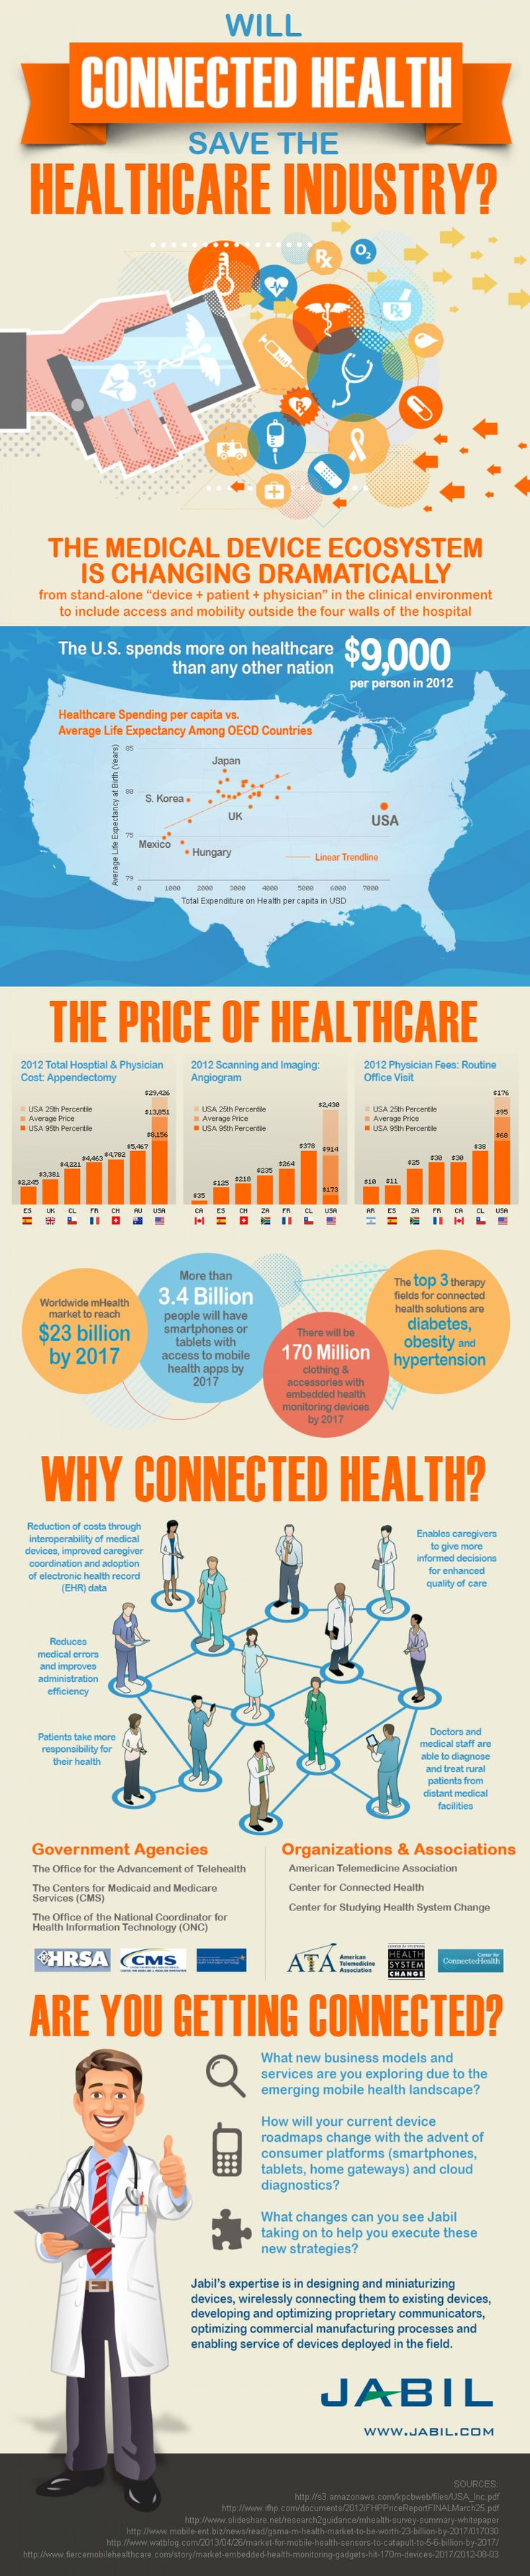 Will Connected Health Save the Healthcare Industry?